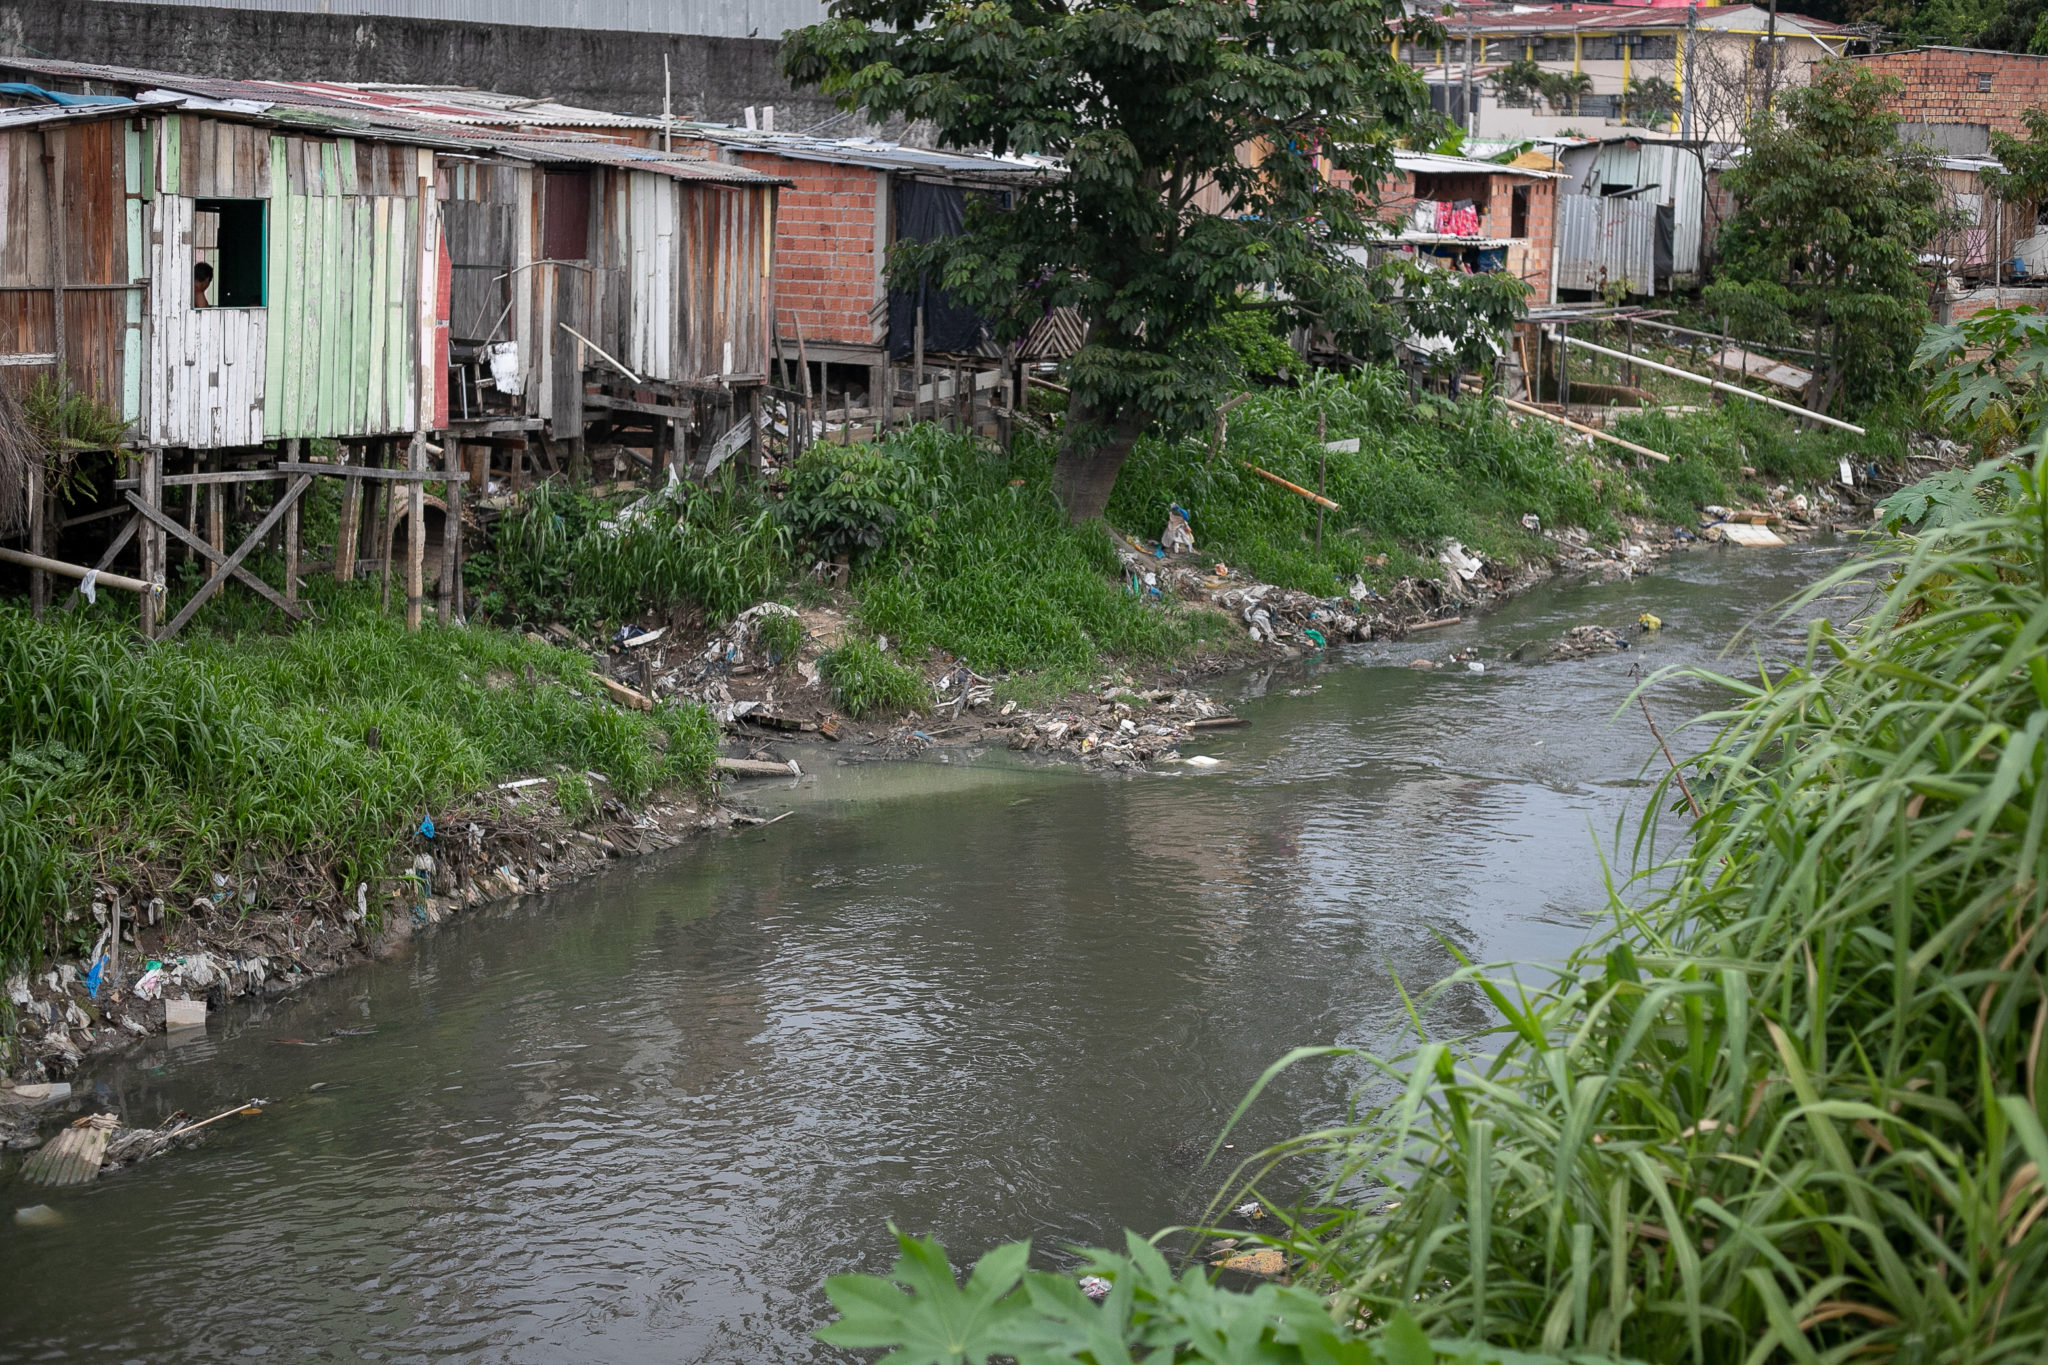 Polluted igarapé in the Raiz neighborhood, in the outskirts of Manaus. Image by César Nogueira.